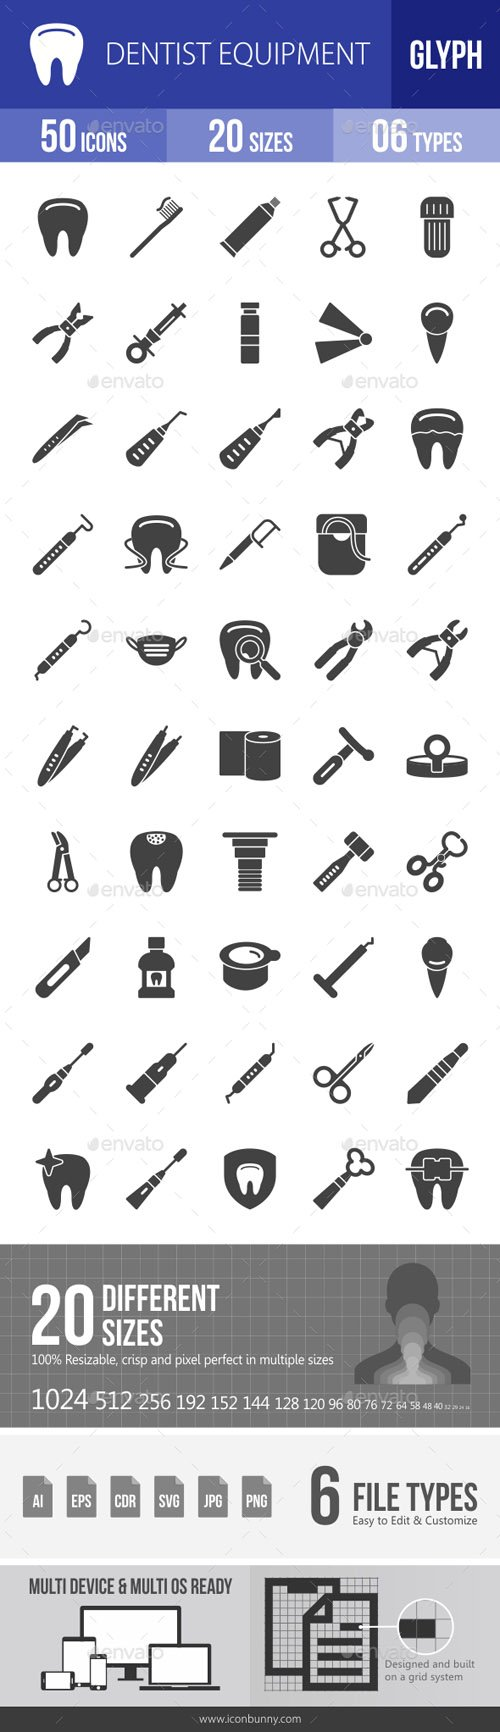 Dentist Equipment Glyph Icons 18081718